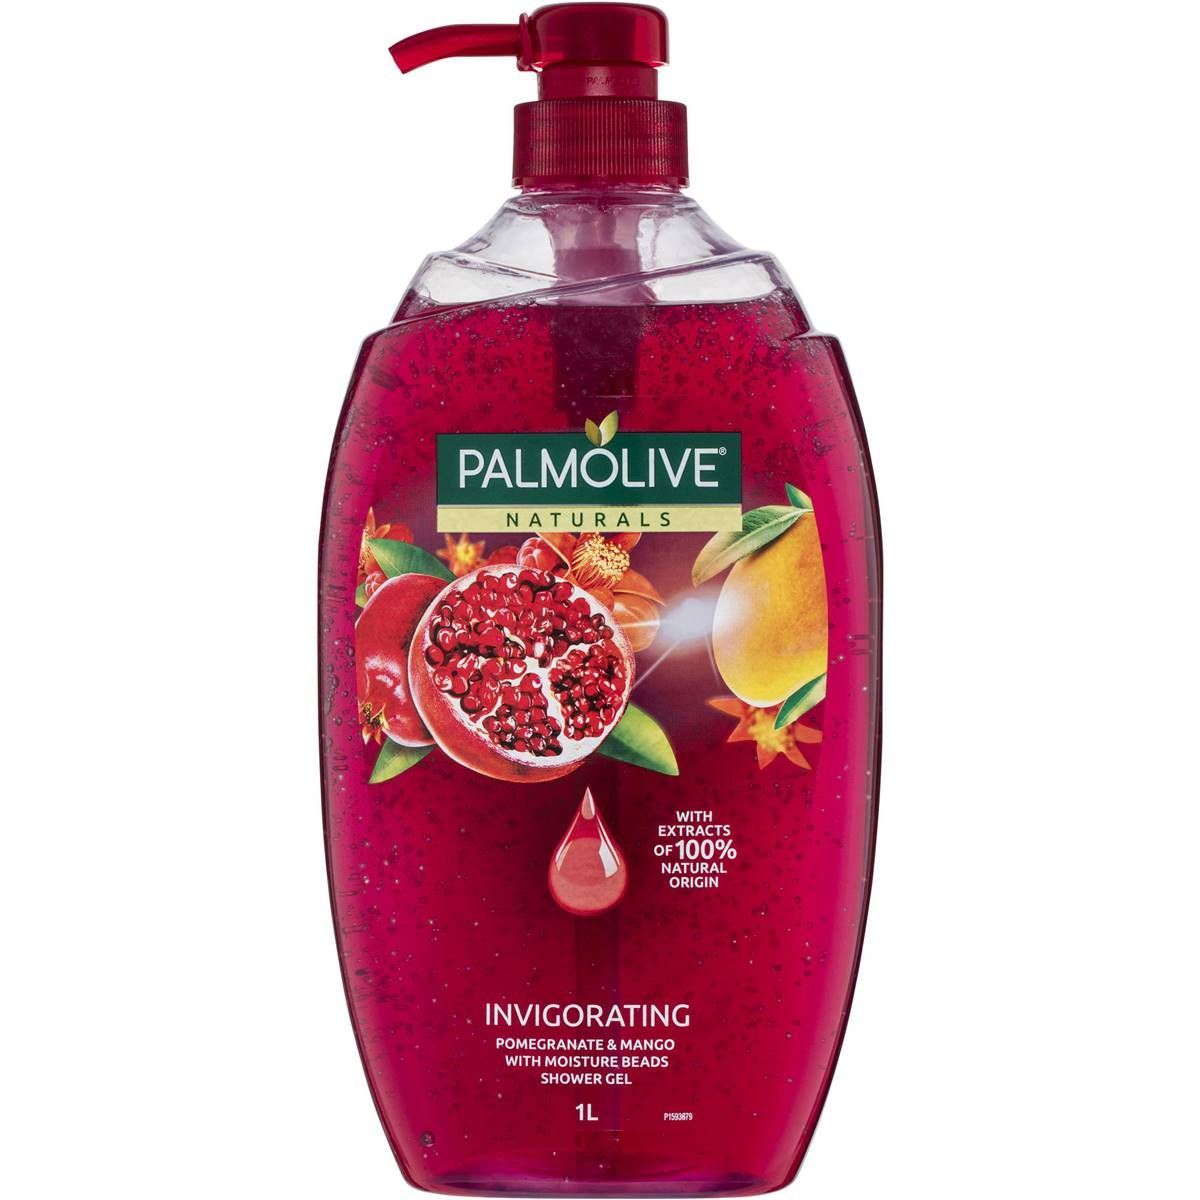 Palmolive Naturals Invigorating Shower Gel Pomegranate Mango